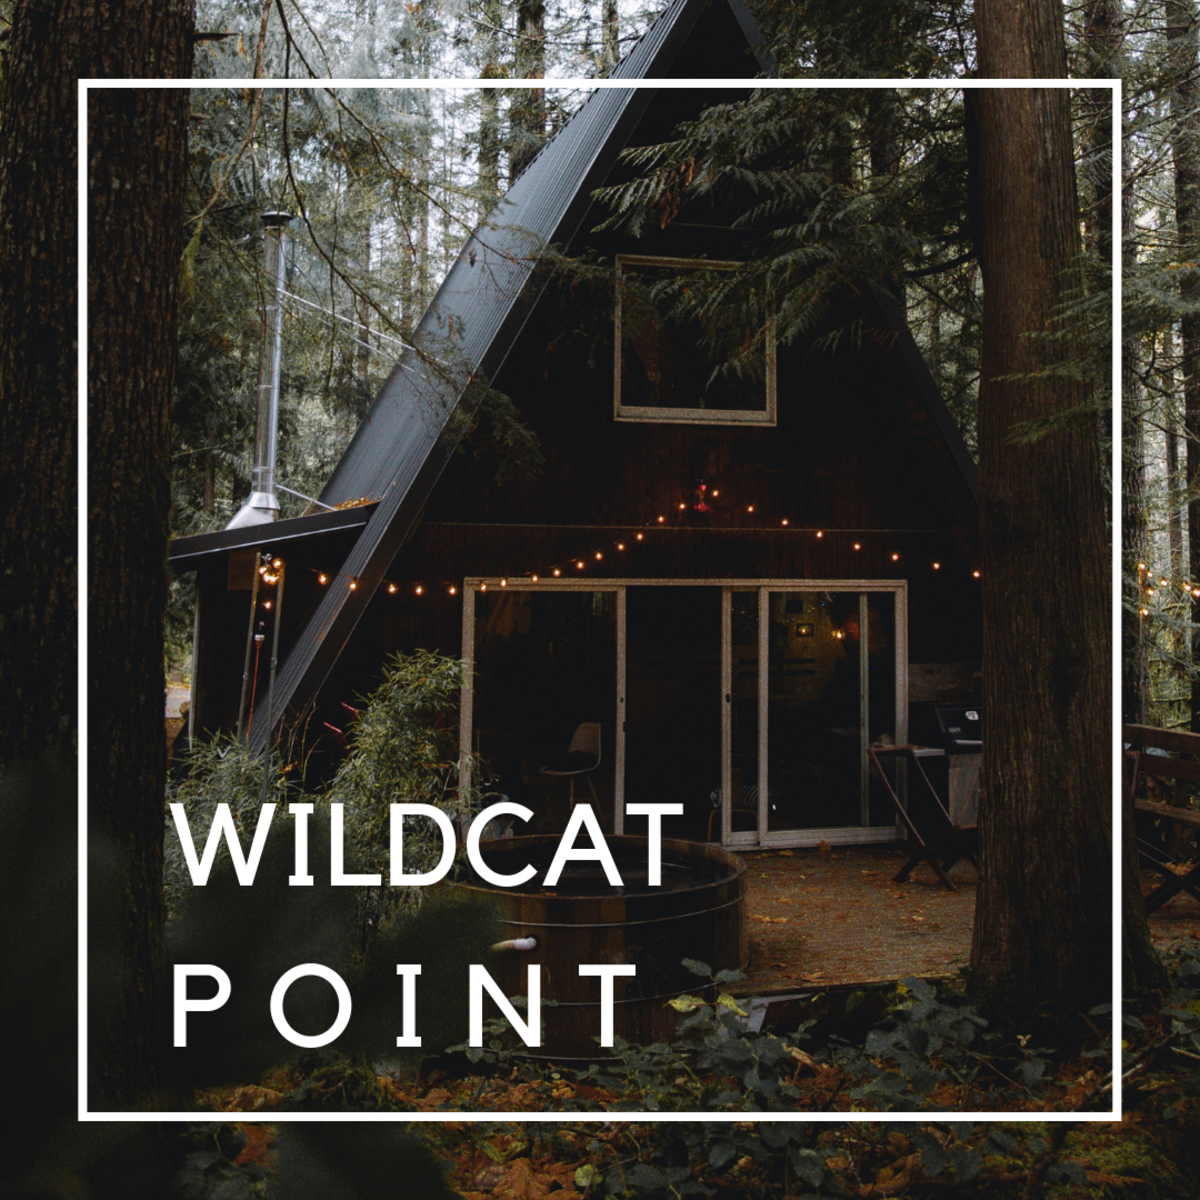 Wildcat Point